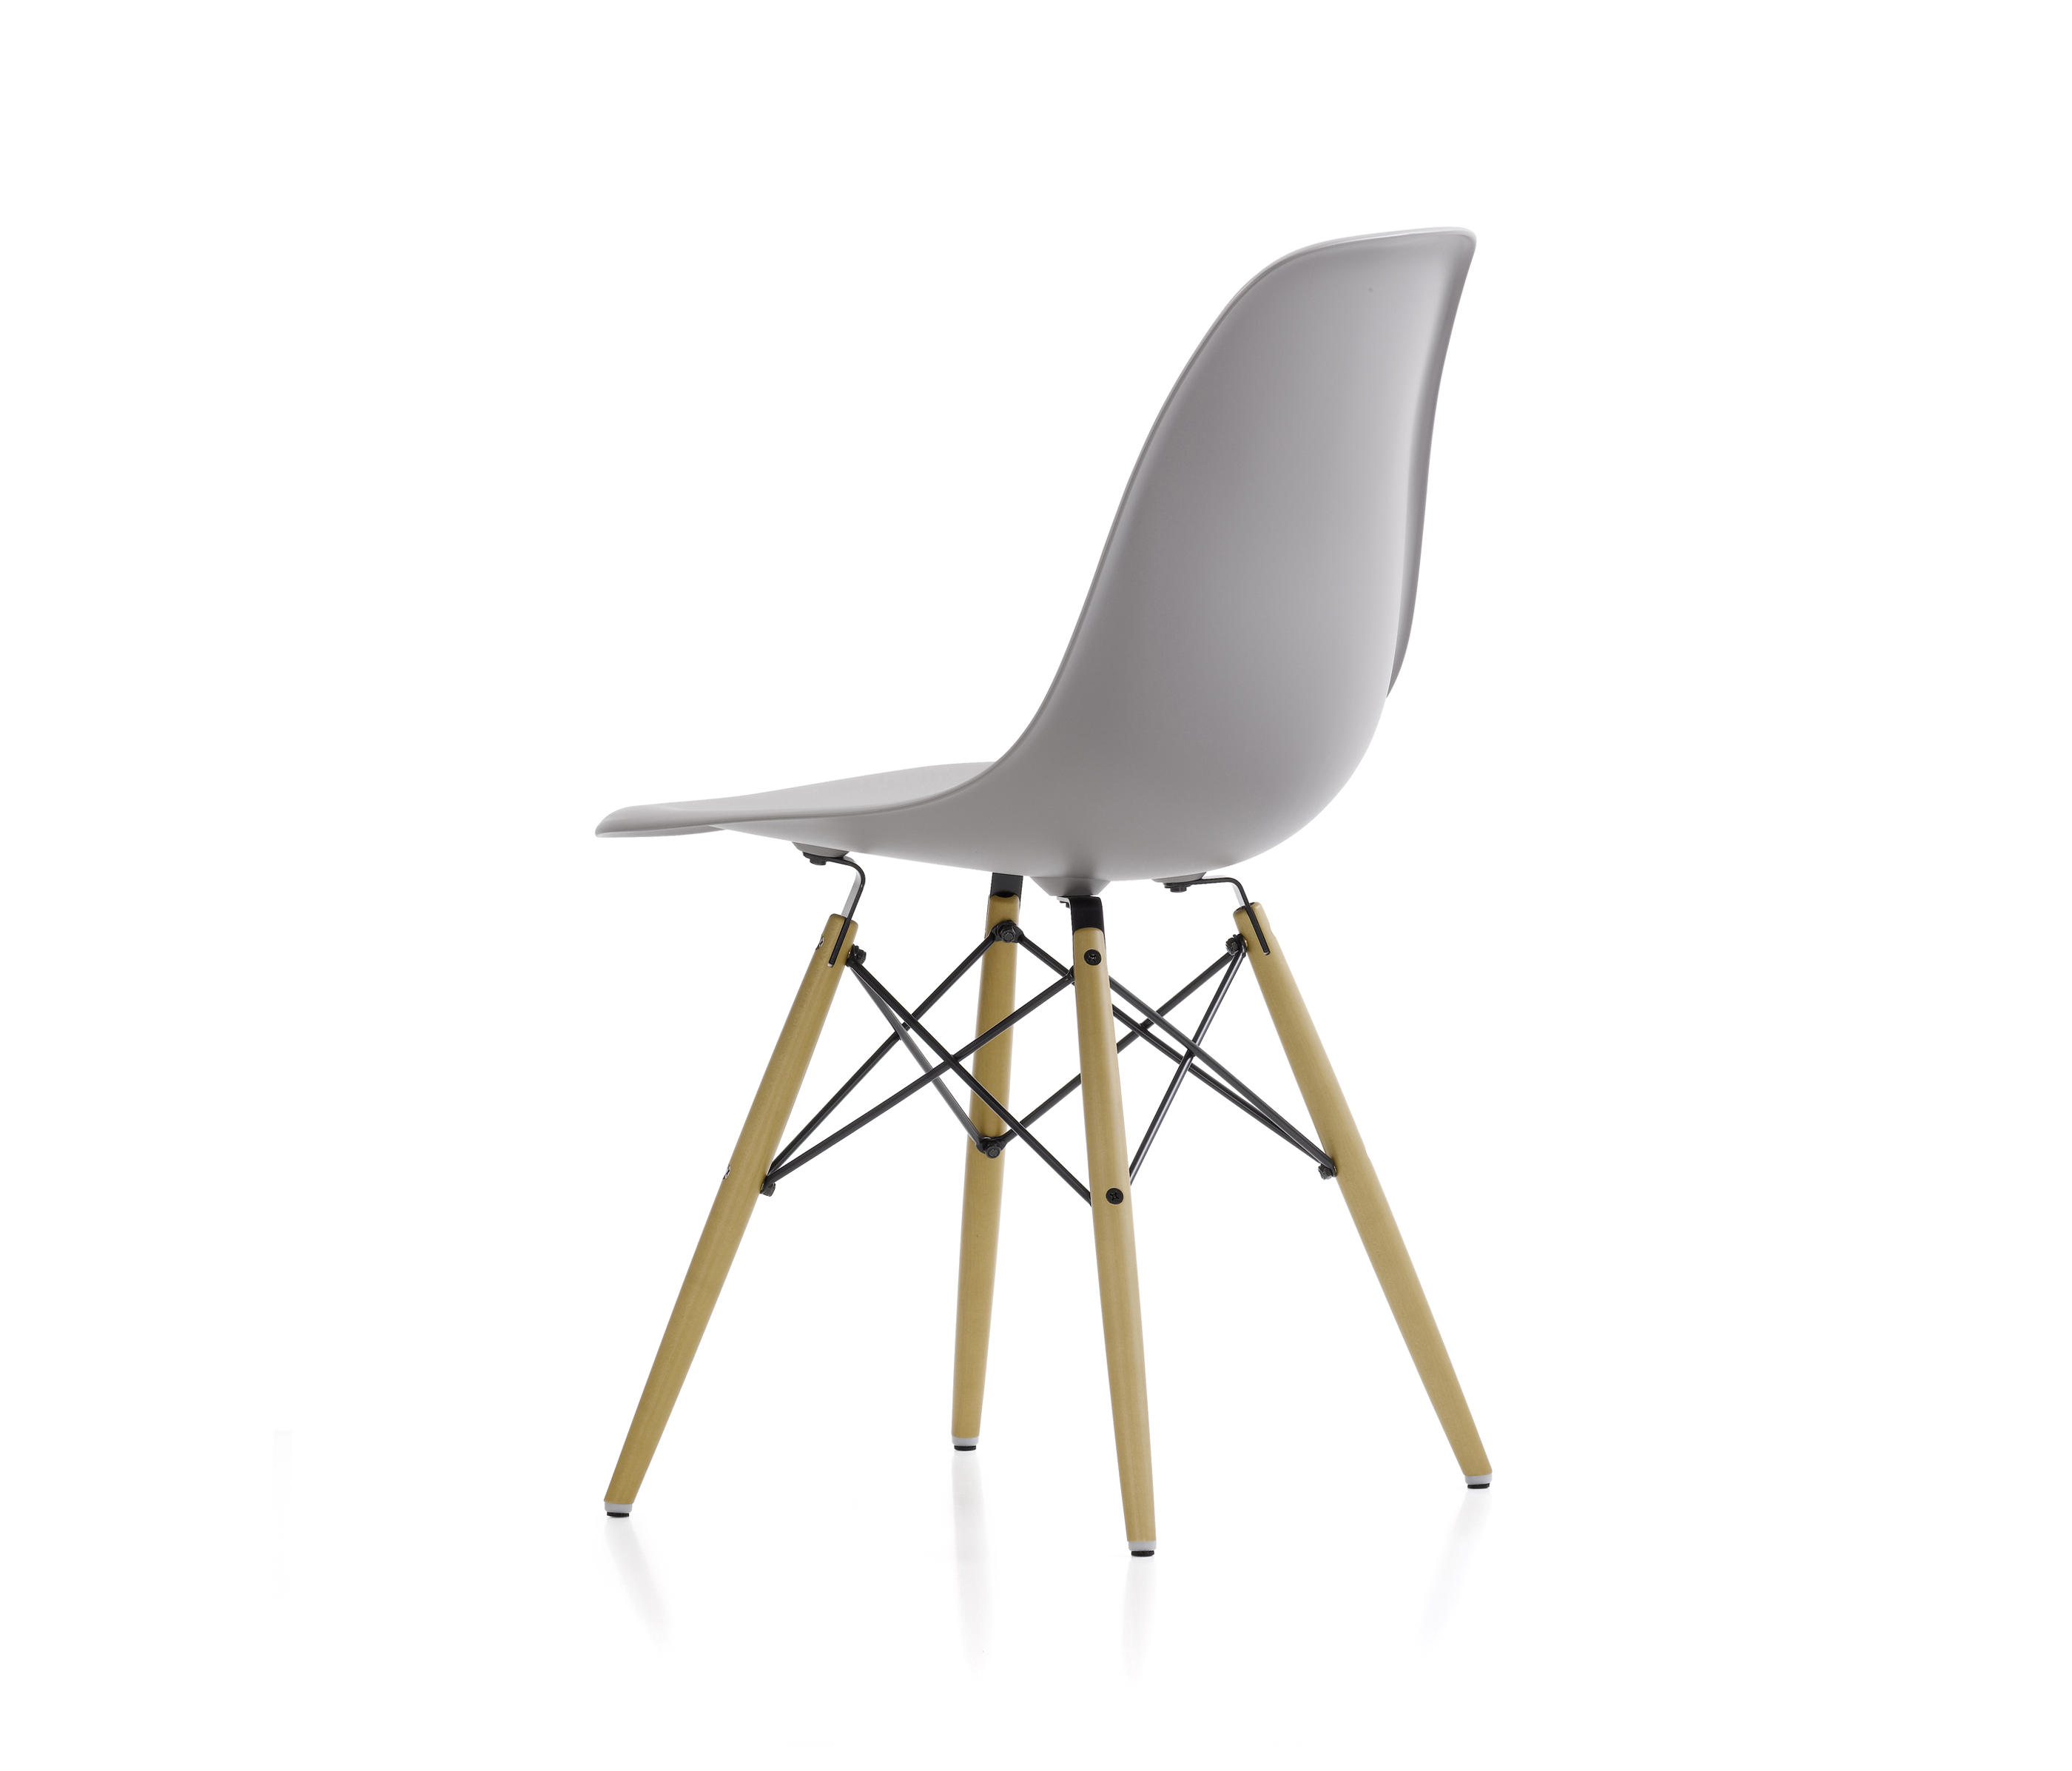 Eames Chair Vitra Preisvergleich Eames Plastic Side Chair Dsw Chairs From Vitra Architonic